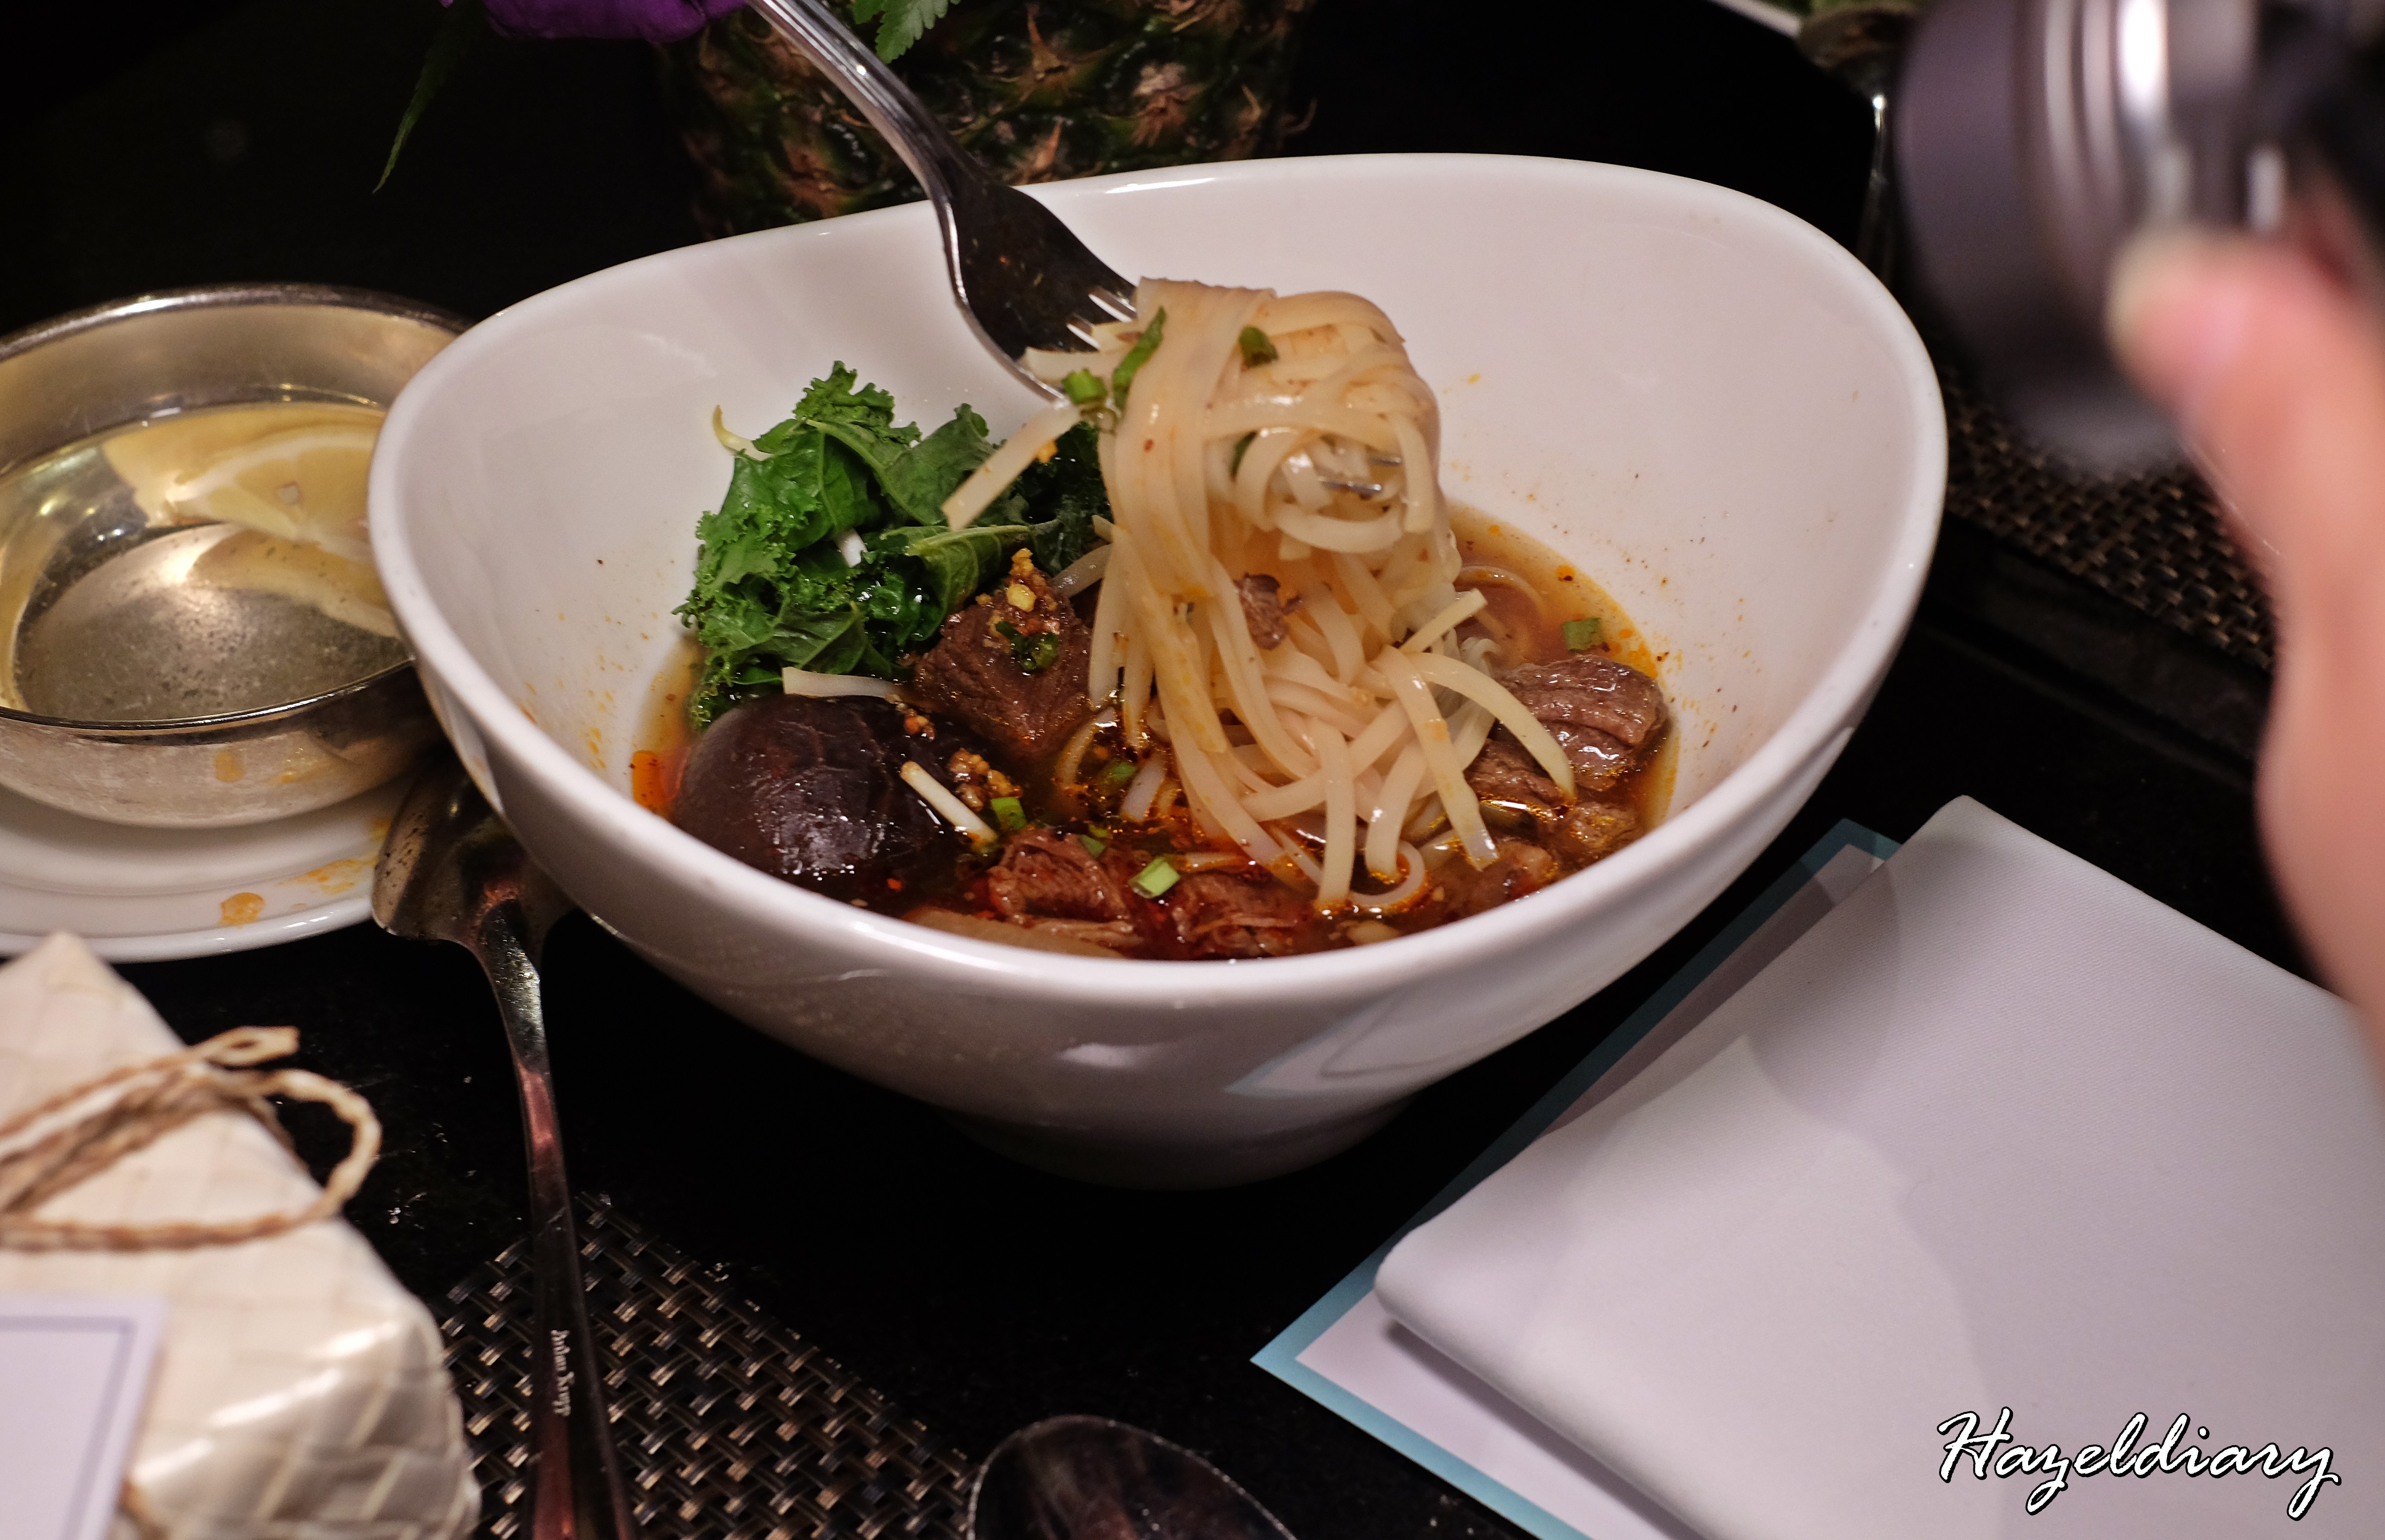 EnThaising Siam-The Dining Room Sheraton Towers Singapore-Noodle soup